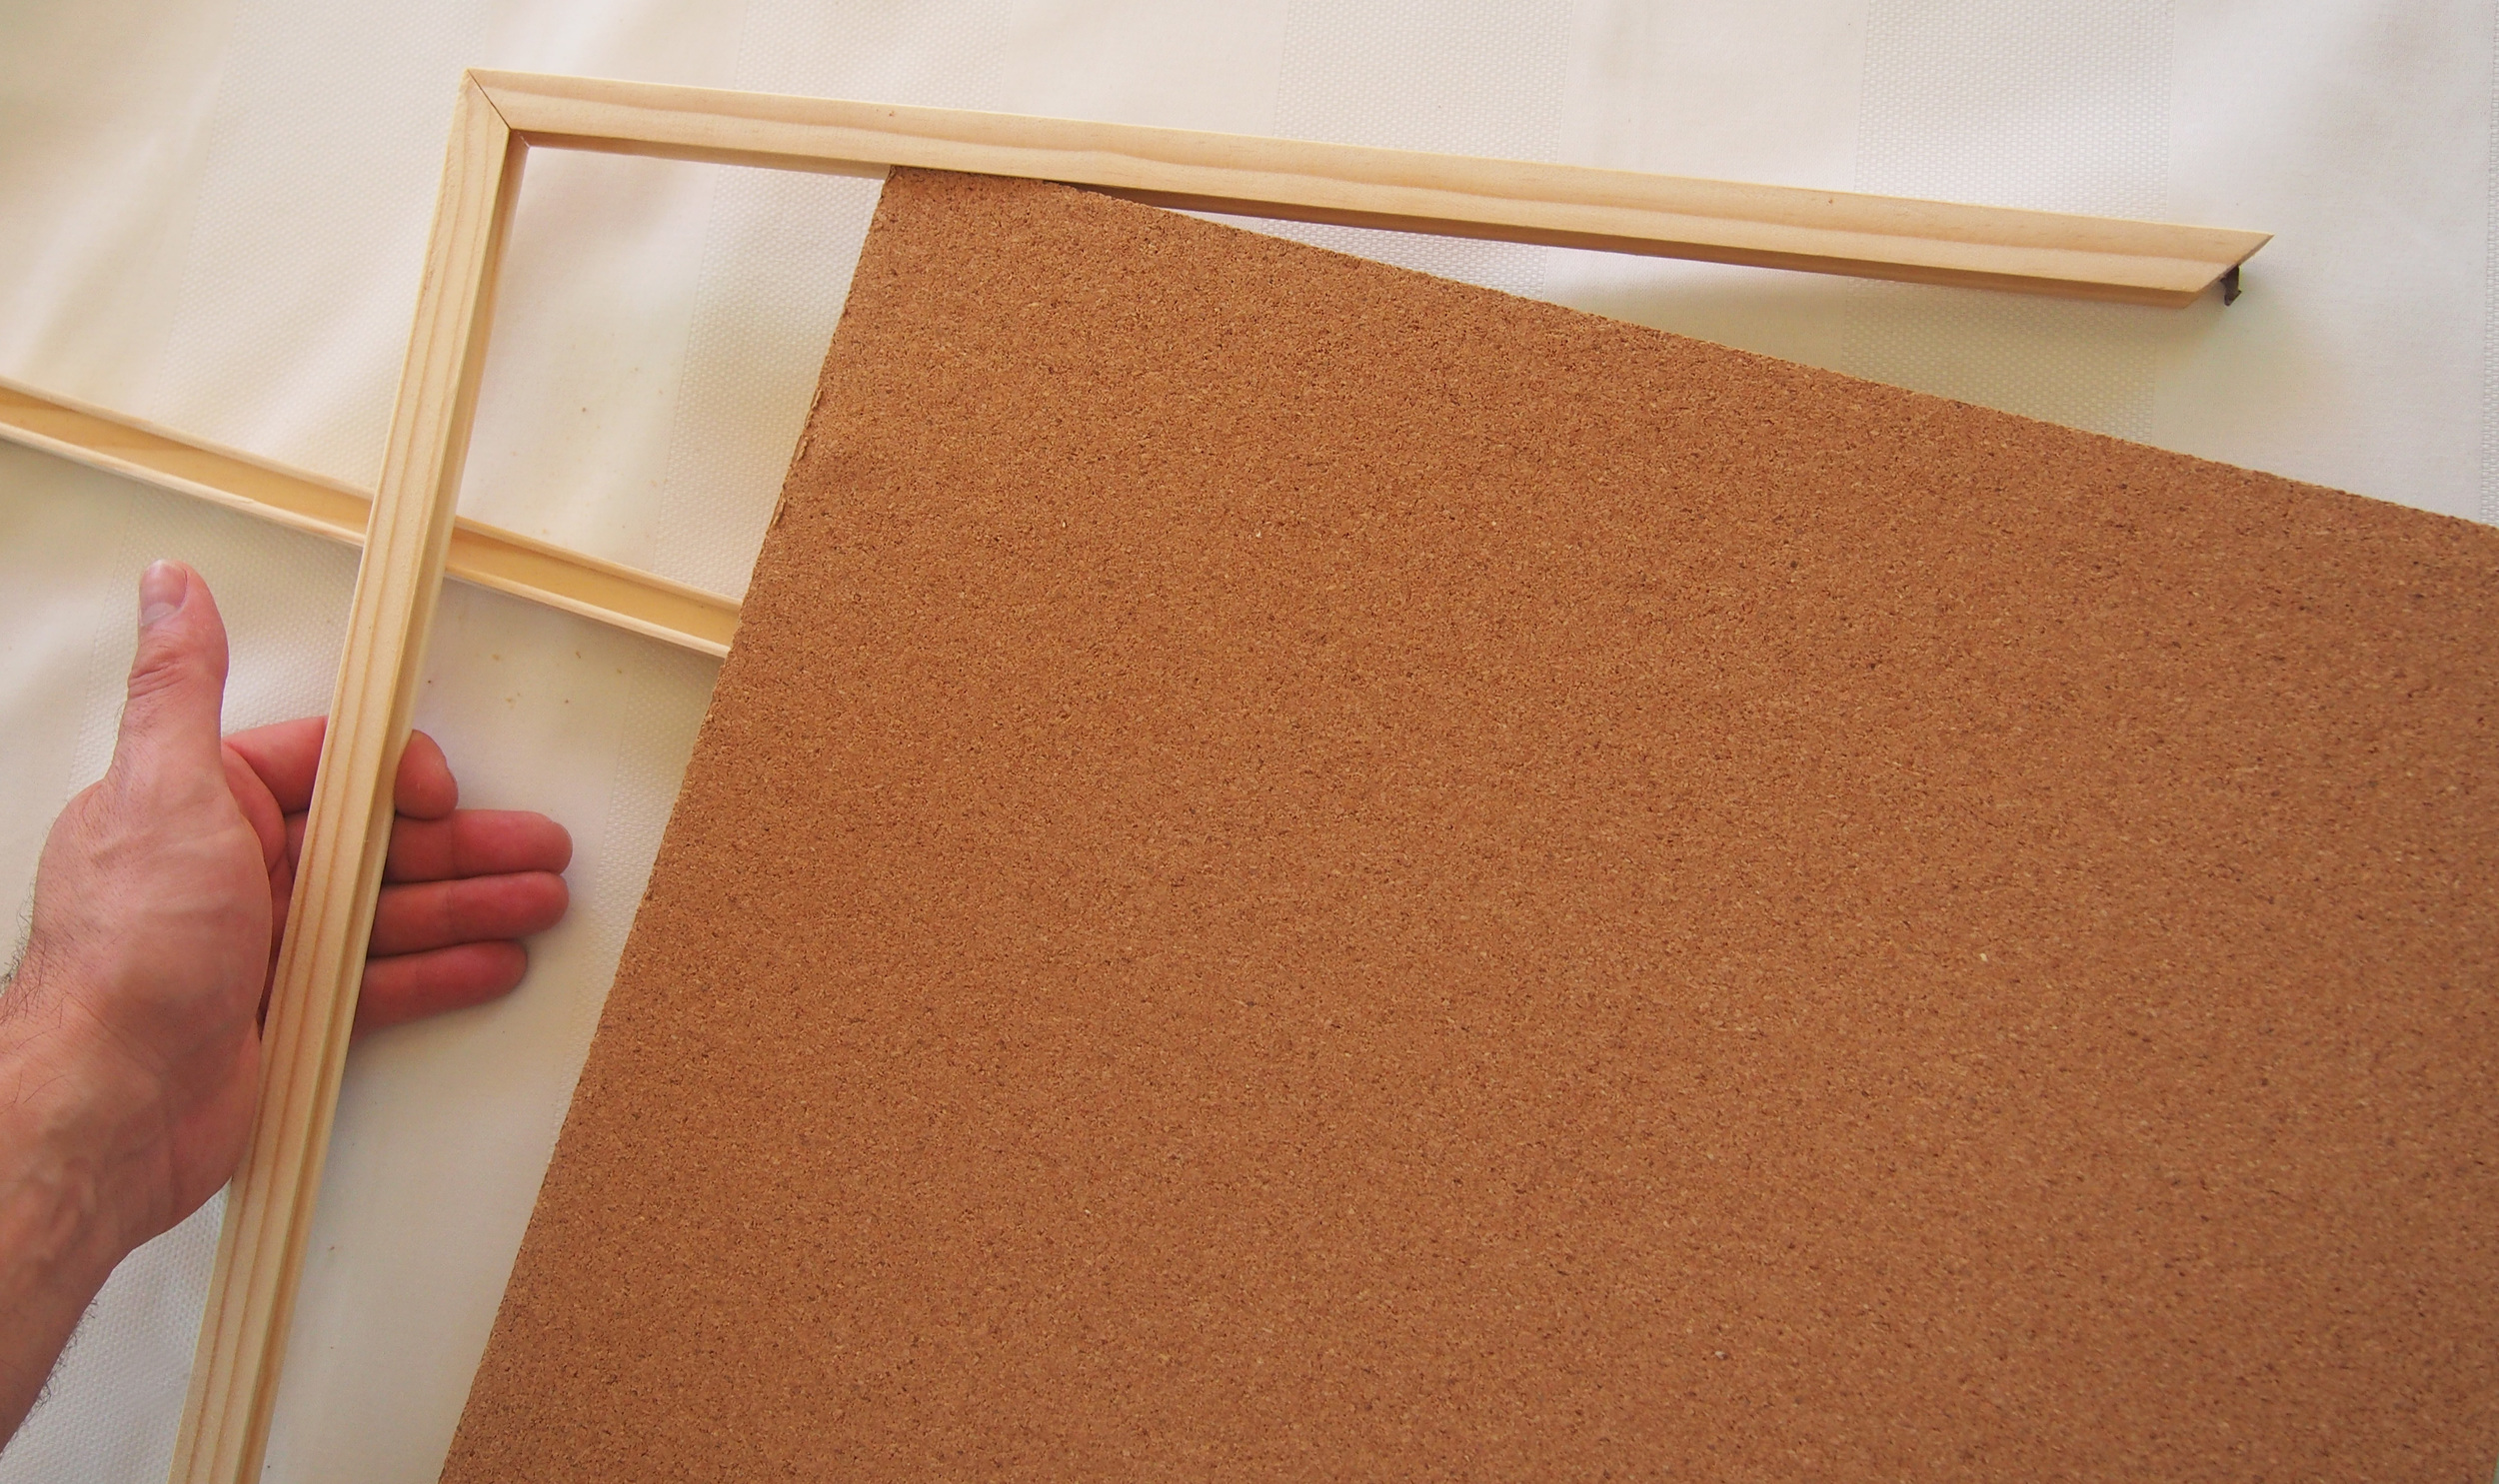 frame apart from cork board